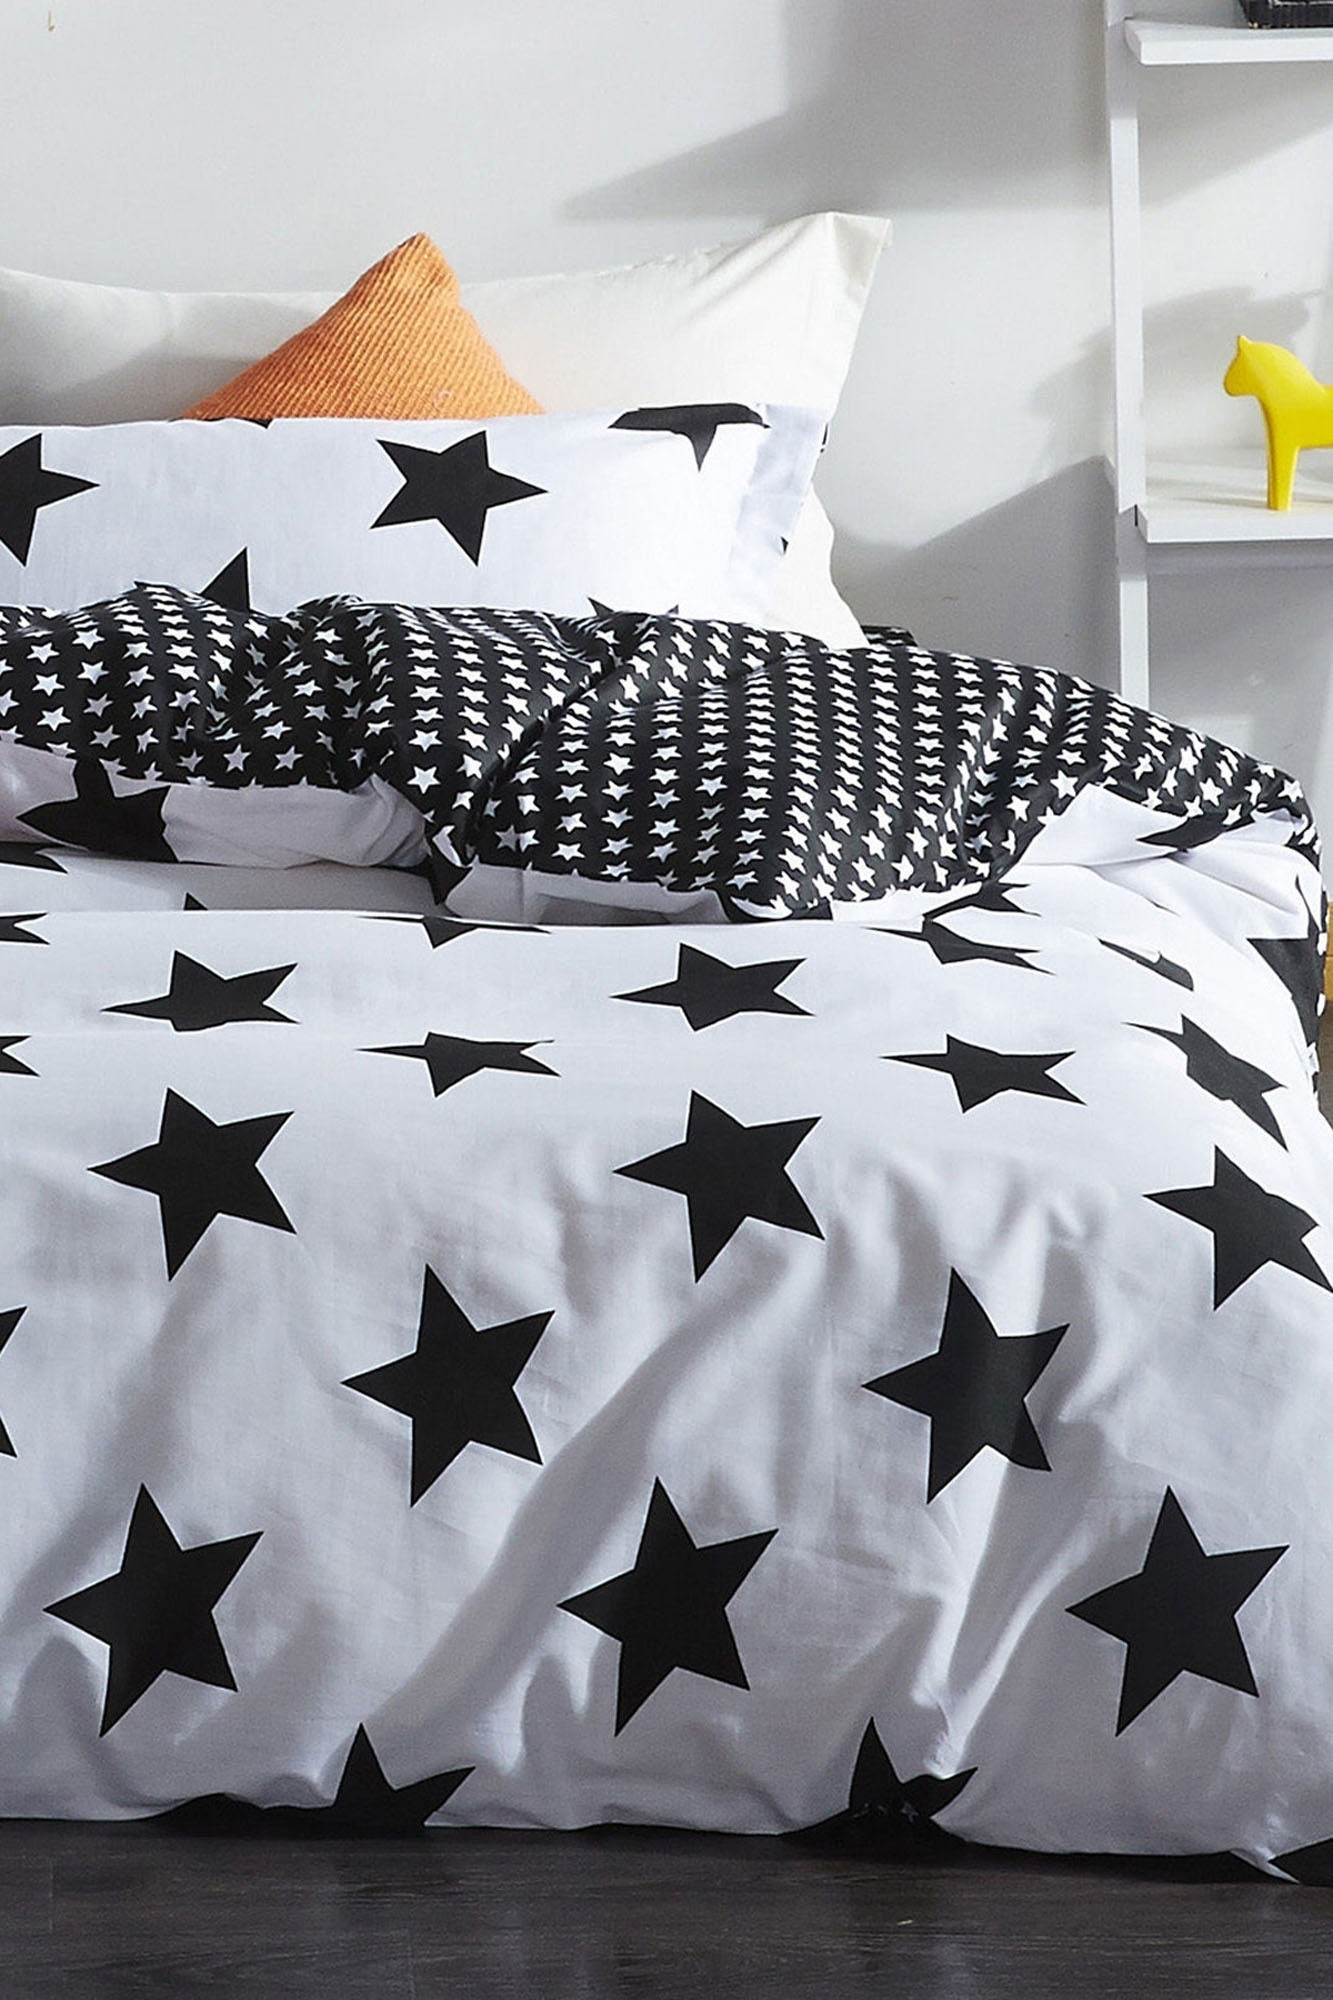 Lenjerie de pat Big Star Negru / Alb, 200 x 220 cm imagine